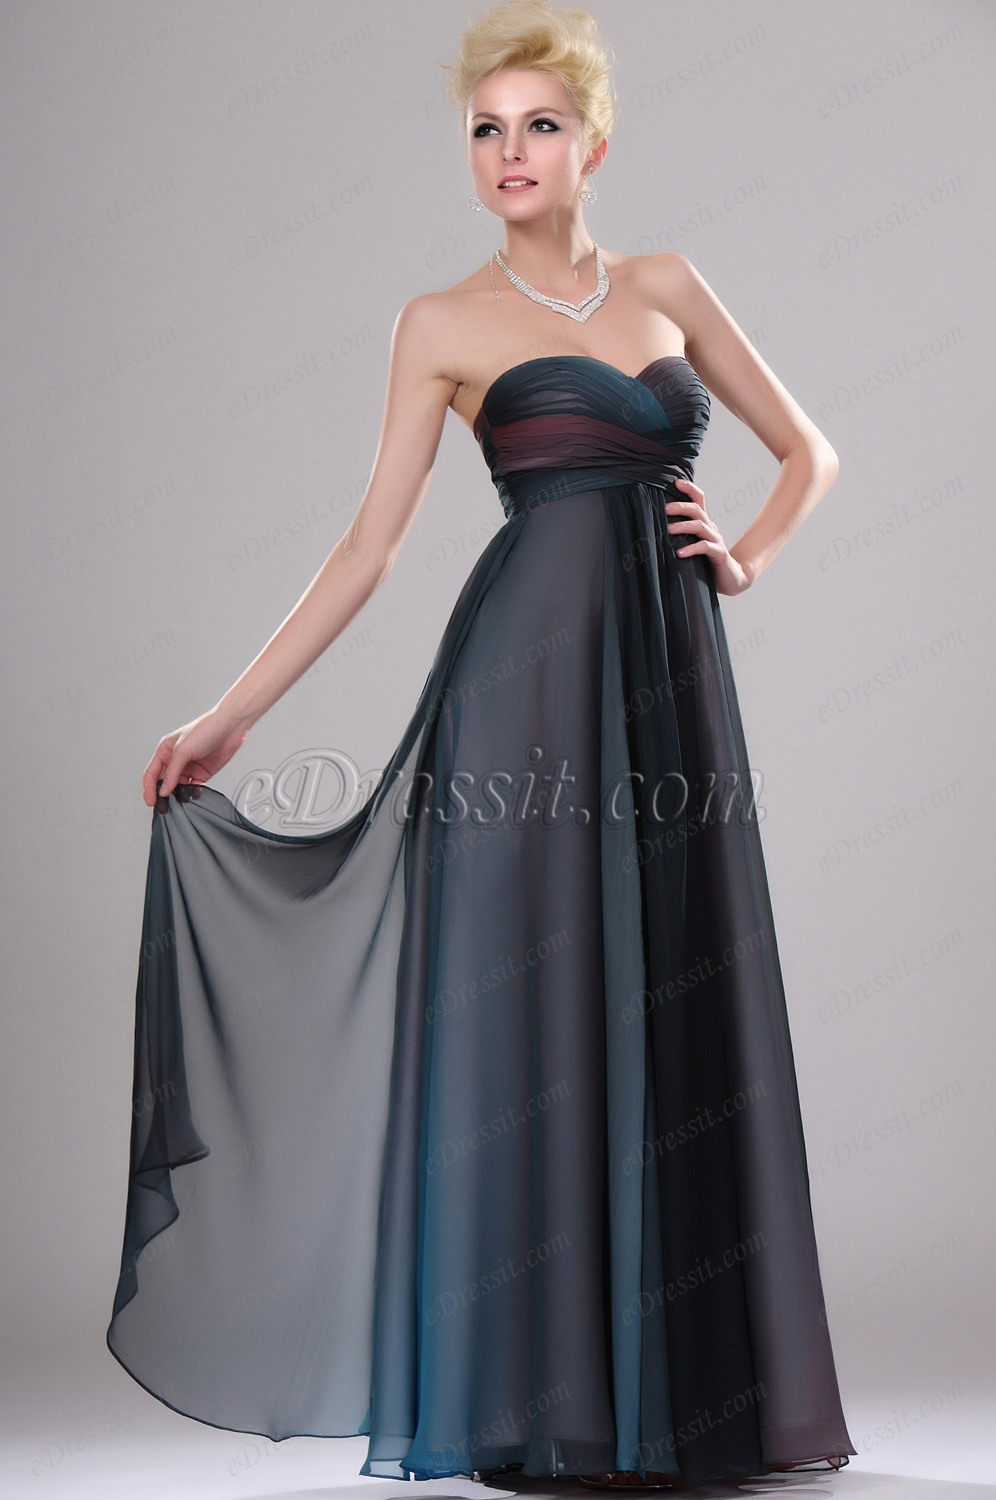 Clearance Sale !eDressit Evening Dress (00113956B)